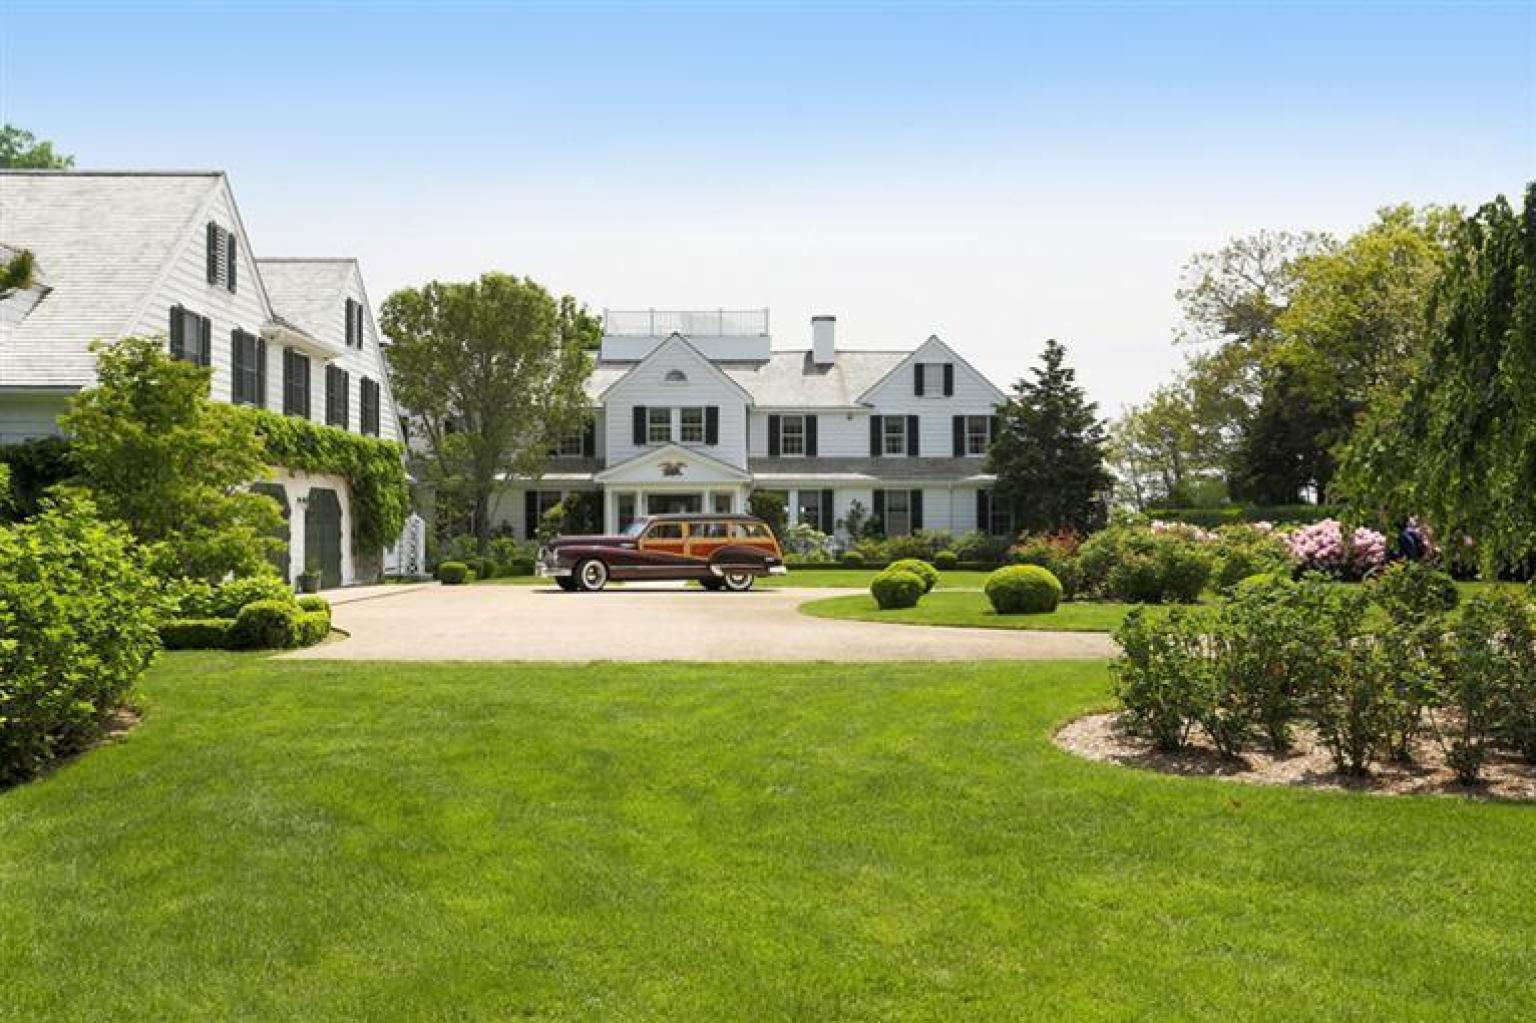 Bill koch 39 s house in cape cod is listed for 15 million for The cape house